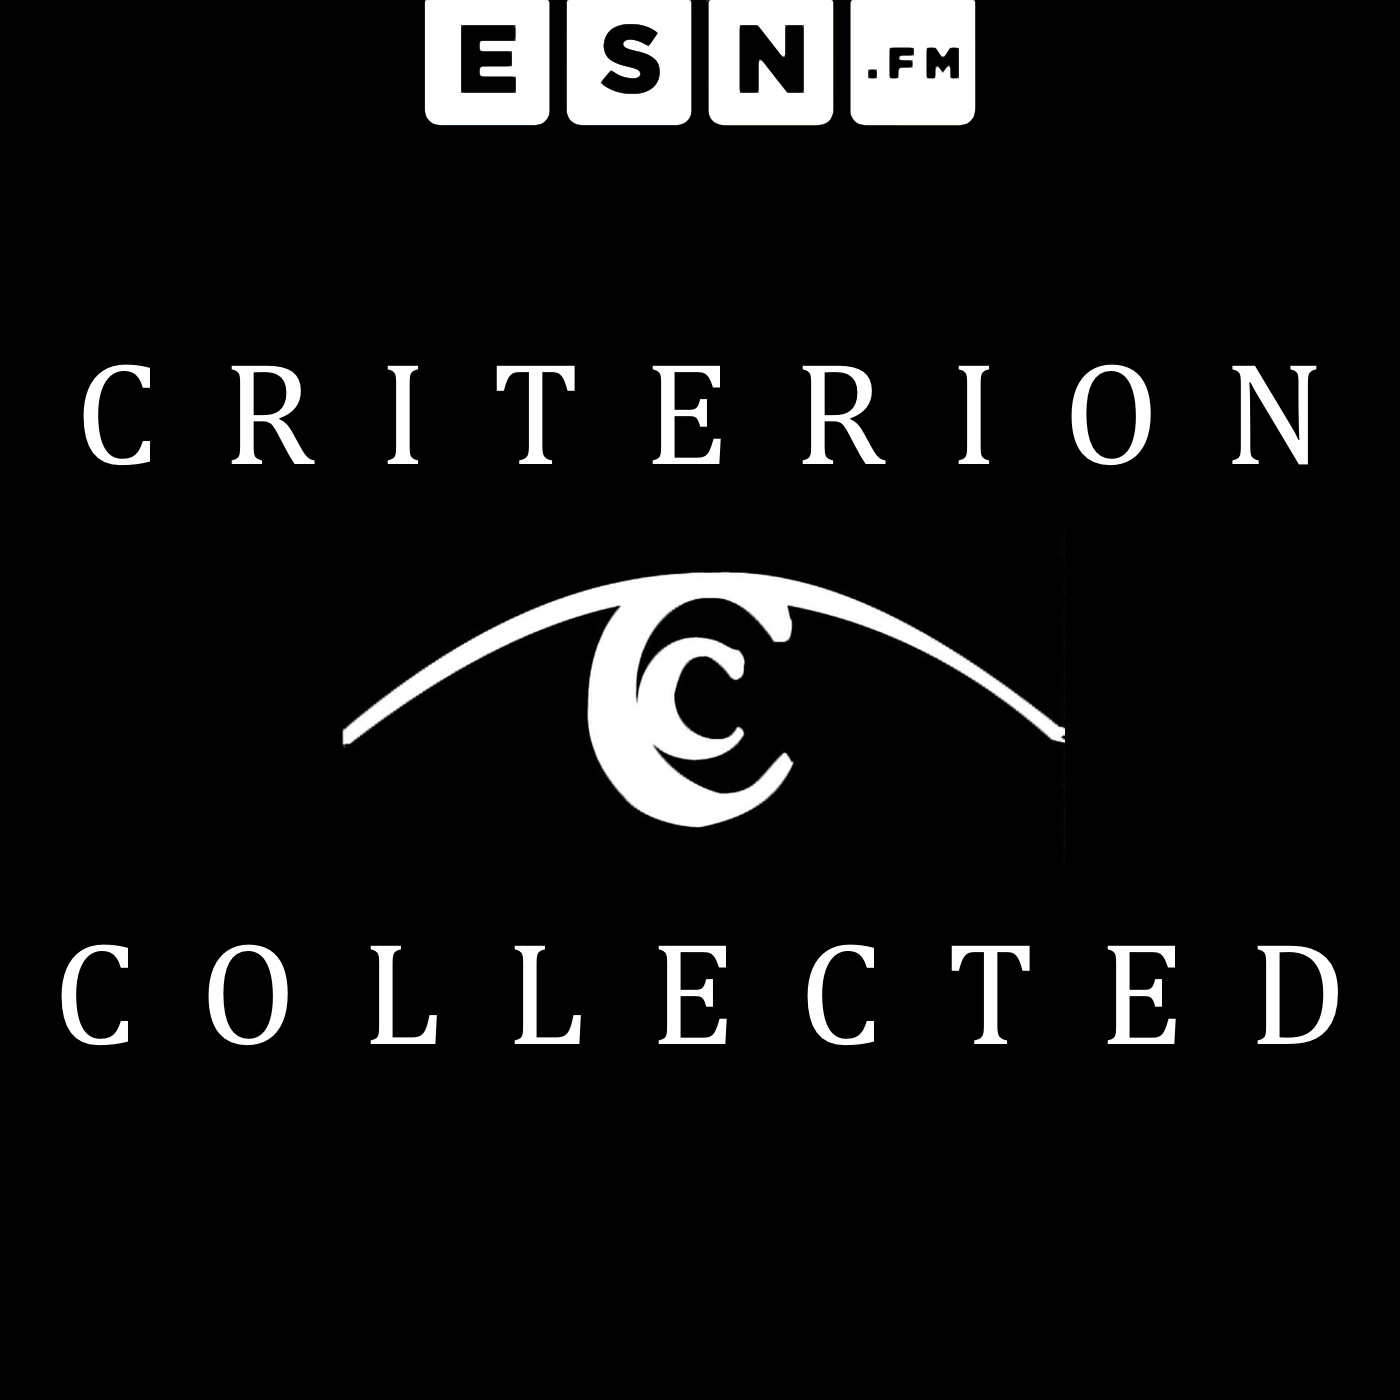 A personal journey through the Criterion Collection.